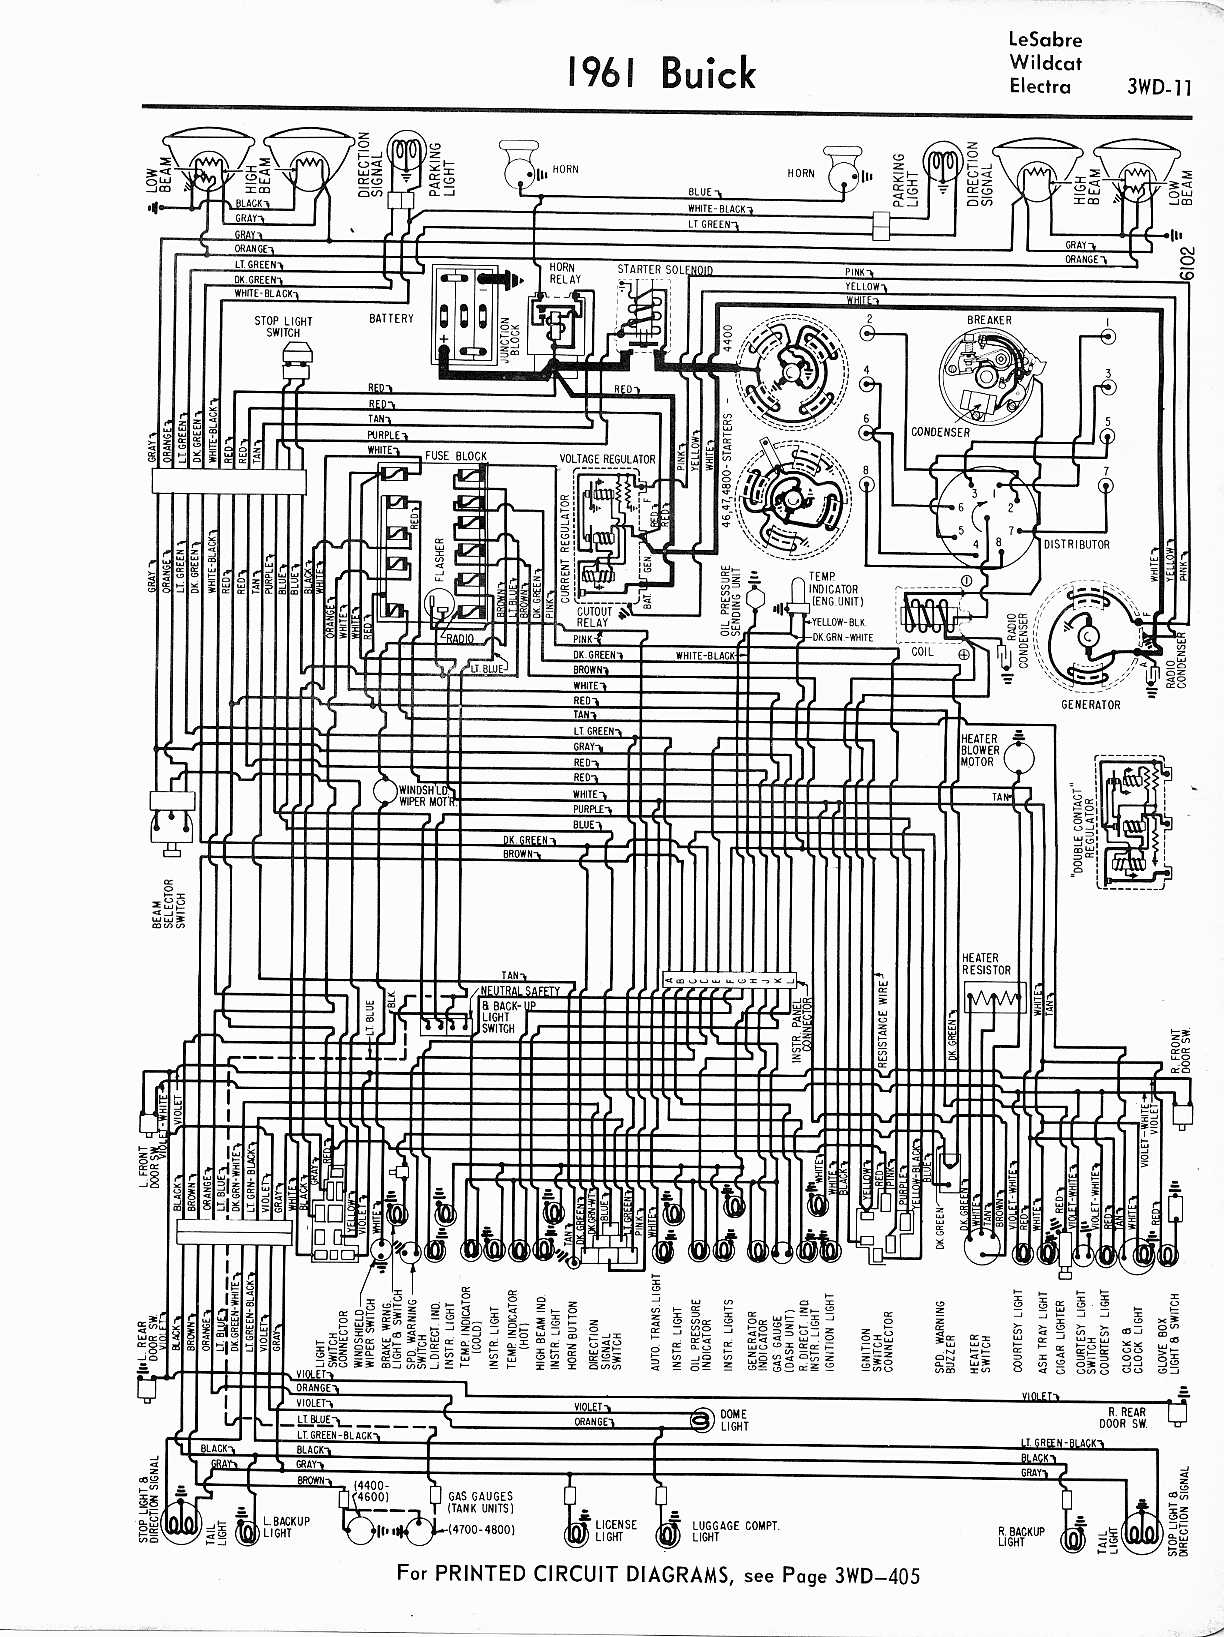 MWireBuic65_3WD 011 buick wiring diagrams 1957 1965 2001 buick lesabre radio wiring diagram at reclaimingppi.co